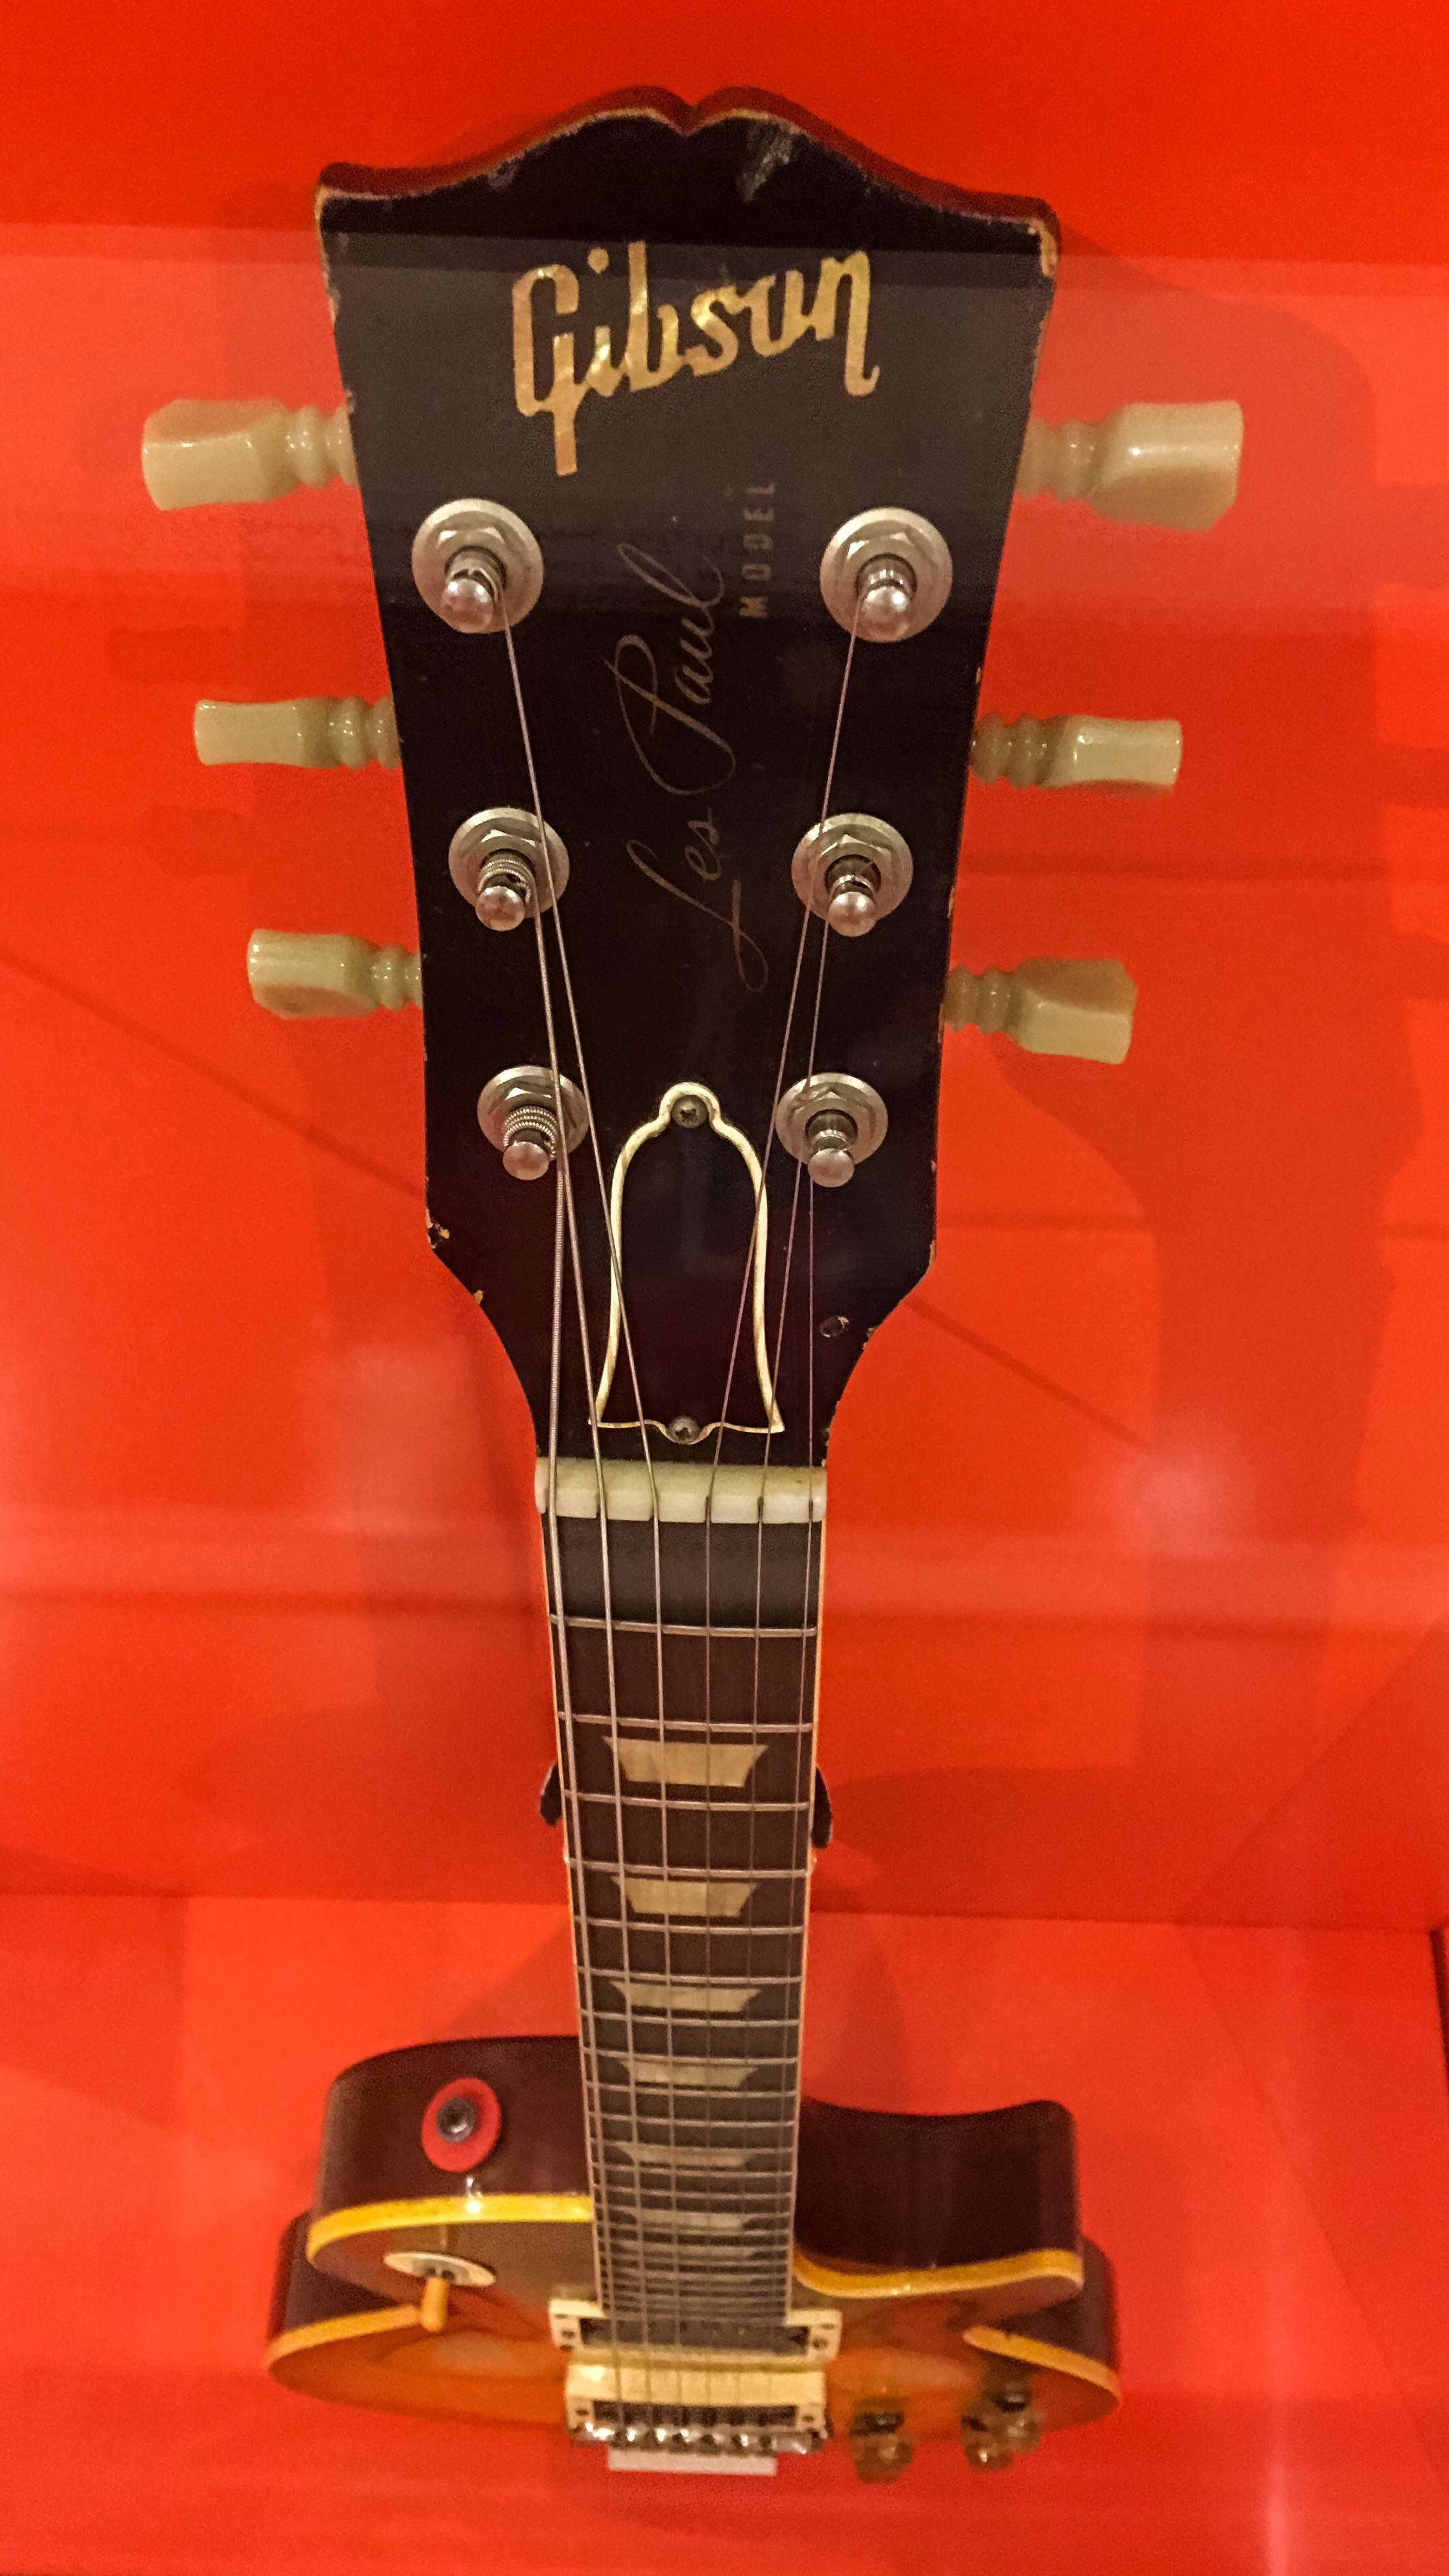 Duane Allman's guitar, used in the recording of the iconic Allman Brothers Live at the Fillmore album.